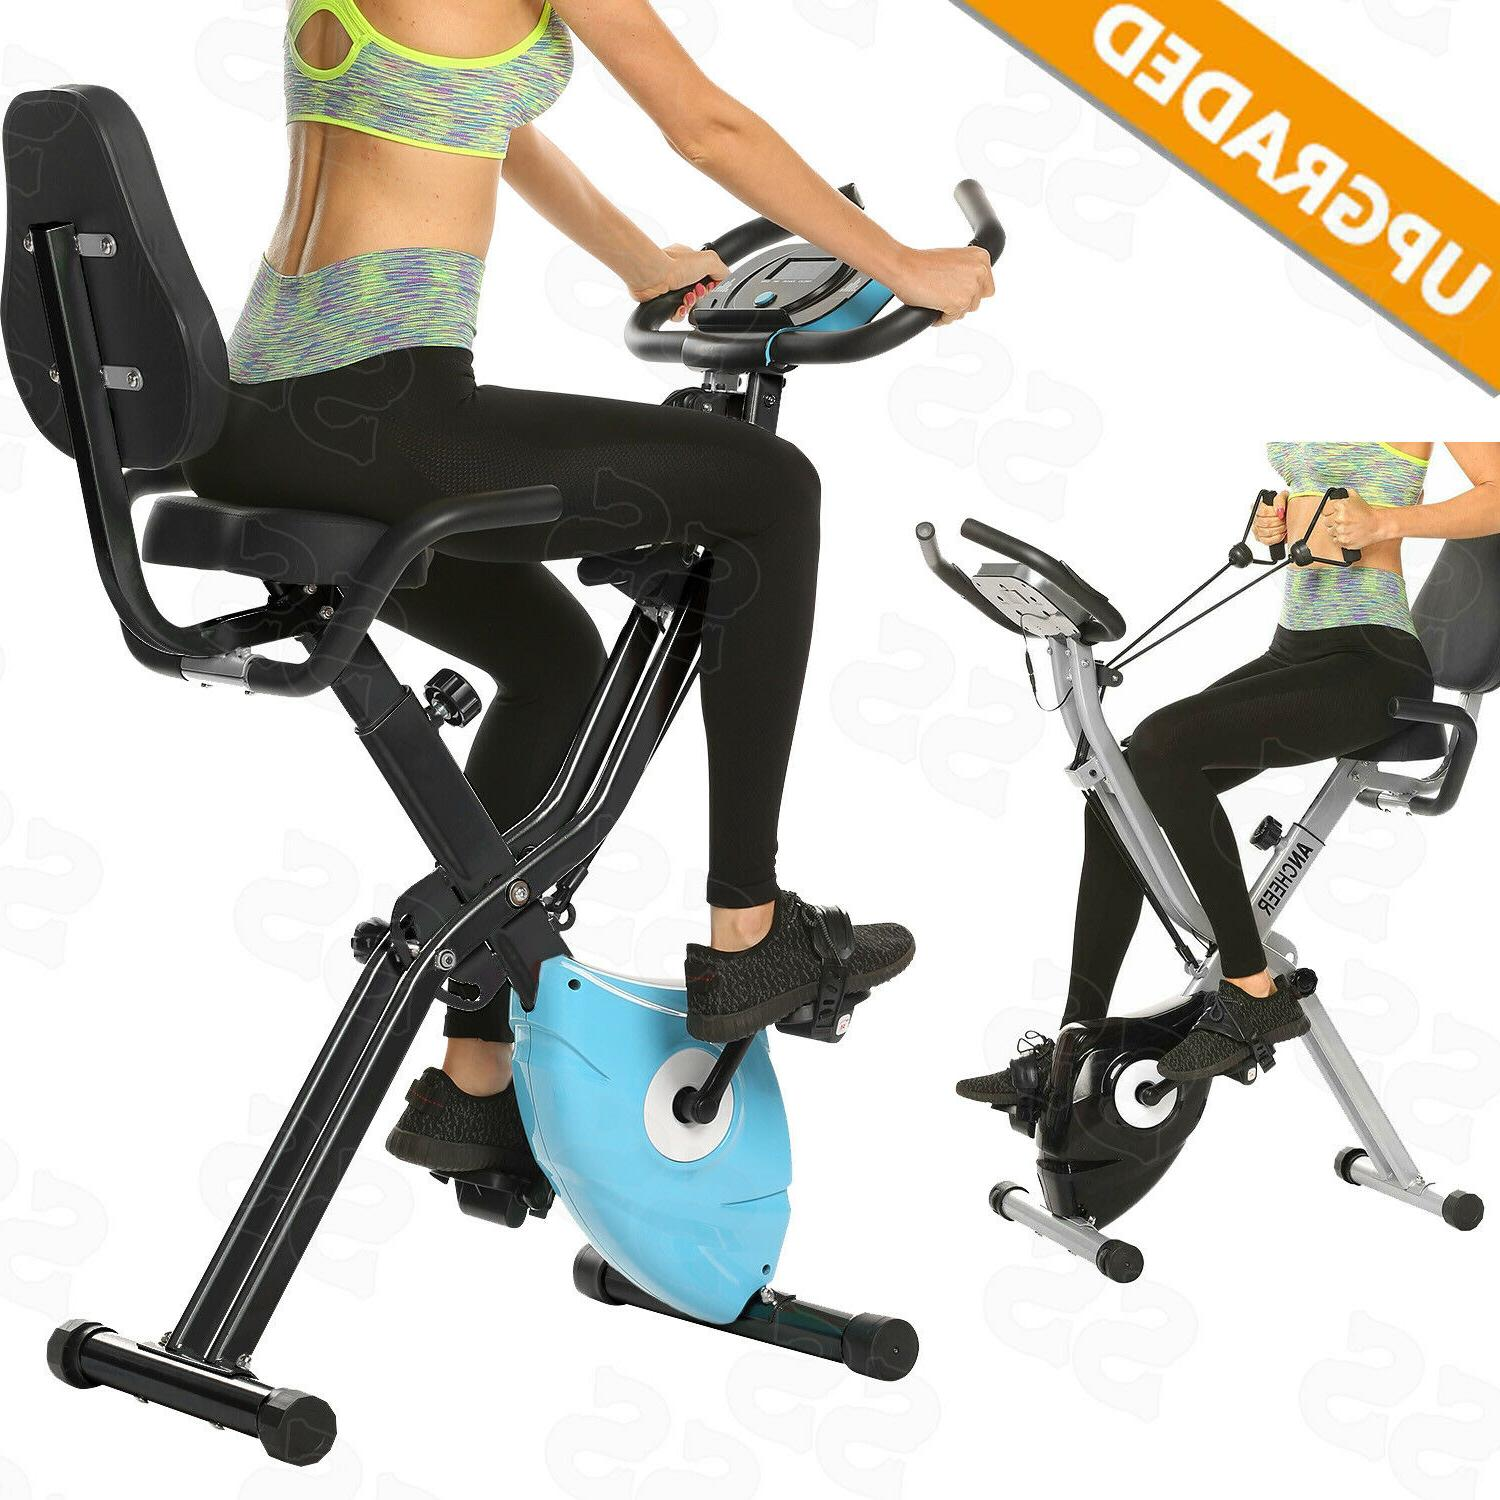 ancheer 2in1 folding exercise bike slim cycling